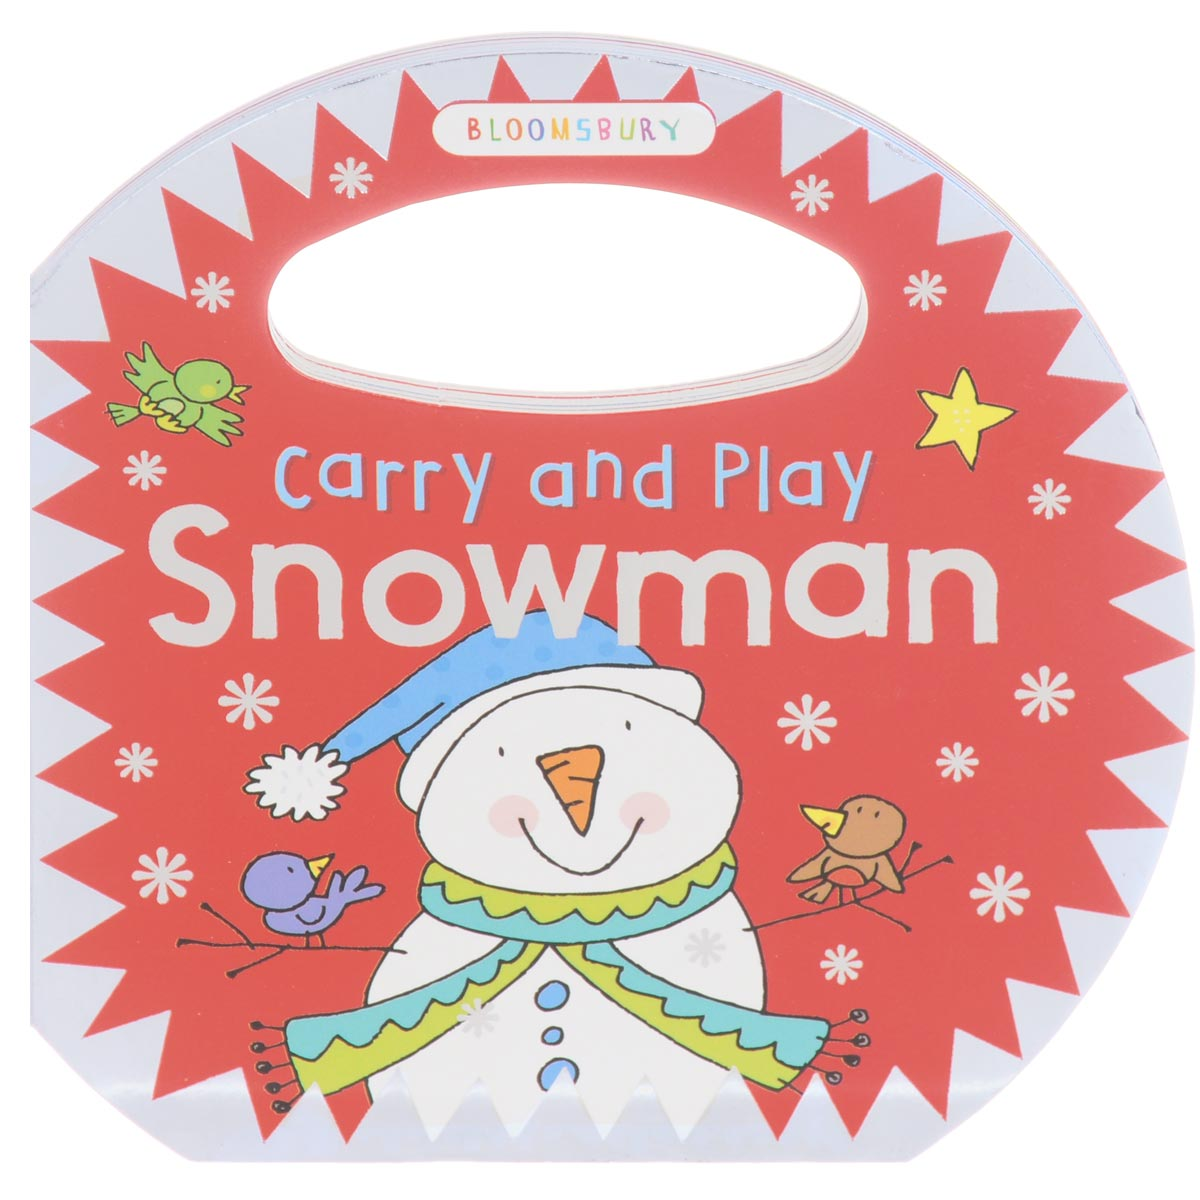 Carry and Play: Snowman the snowman